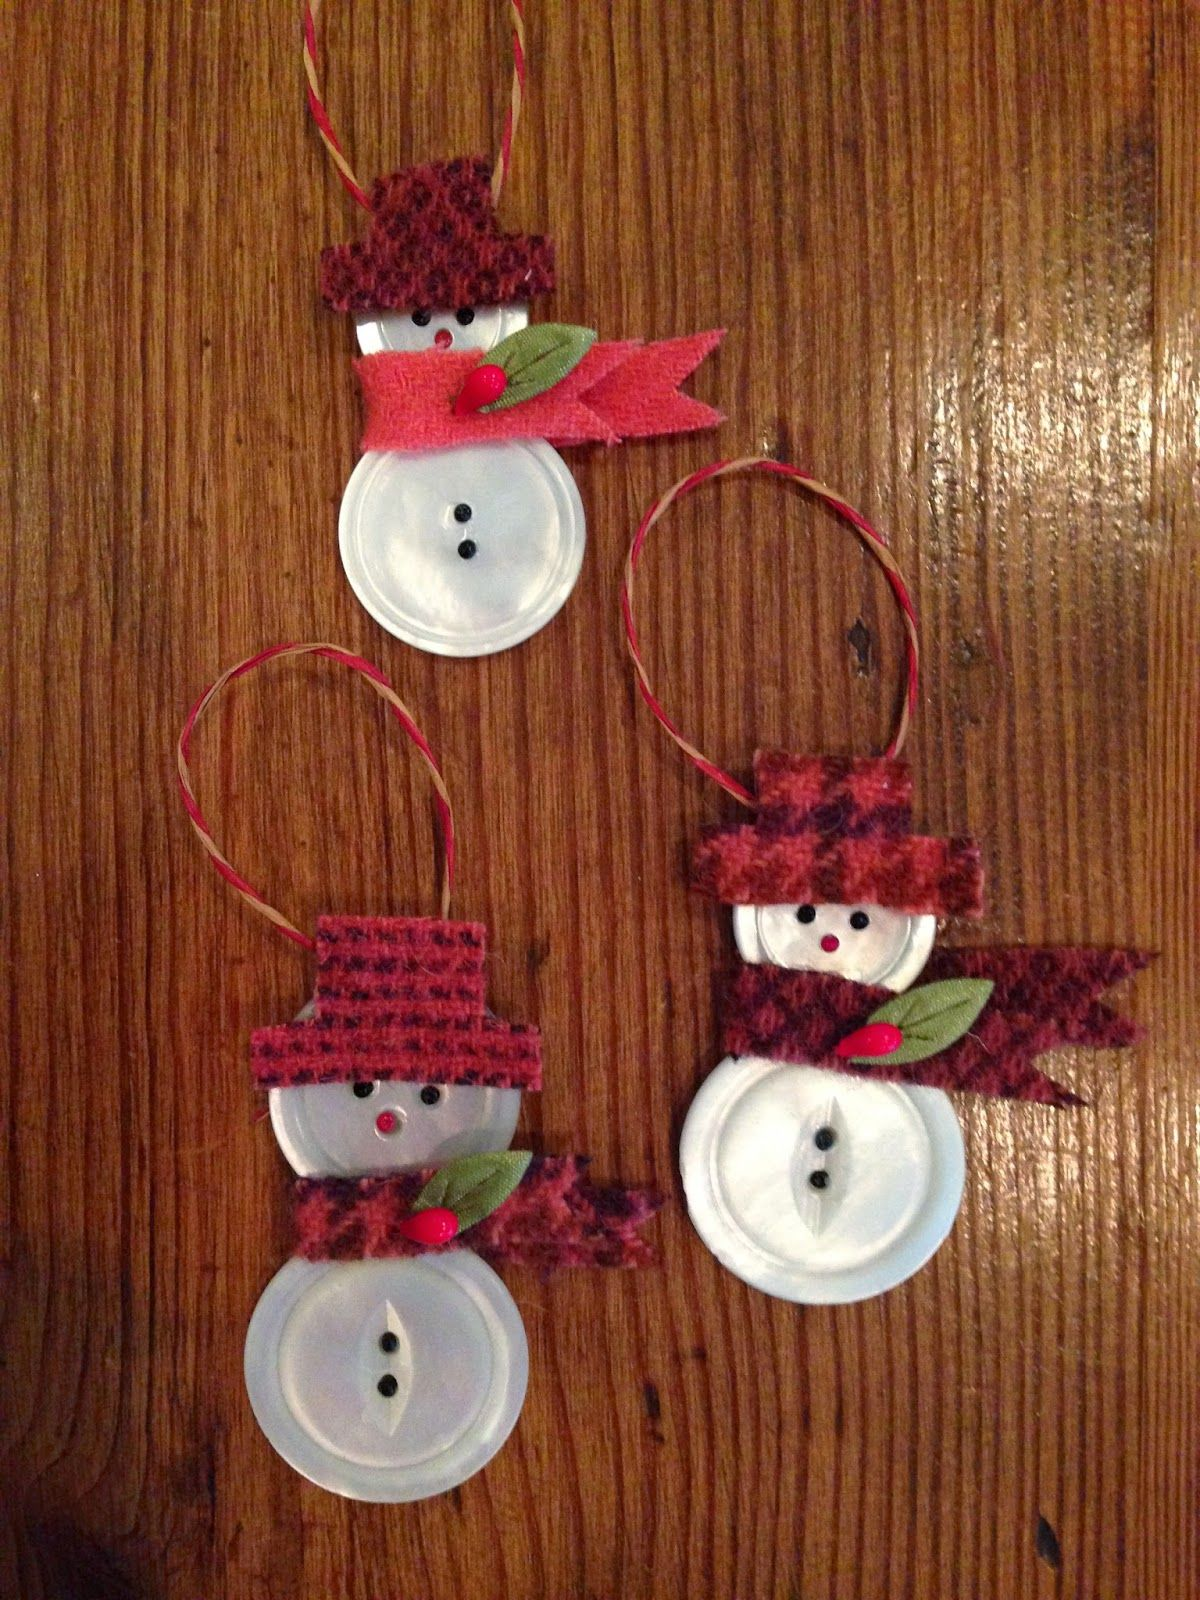 75 DIY Christmas Ornaments Your Family Will Treasure for